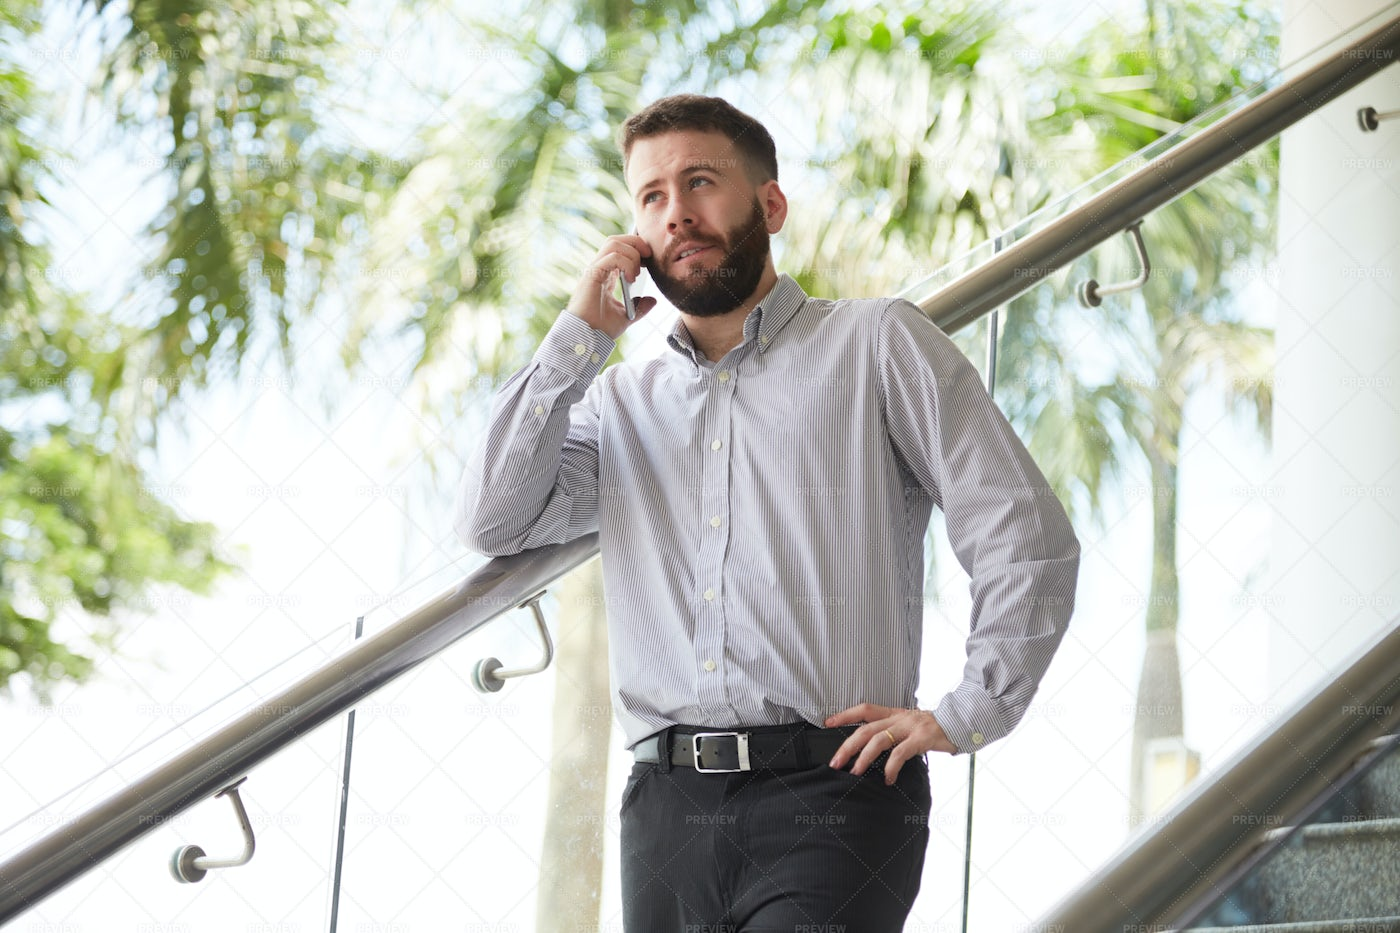 Manager Talking On Mobile Phone: Stock Photos